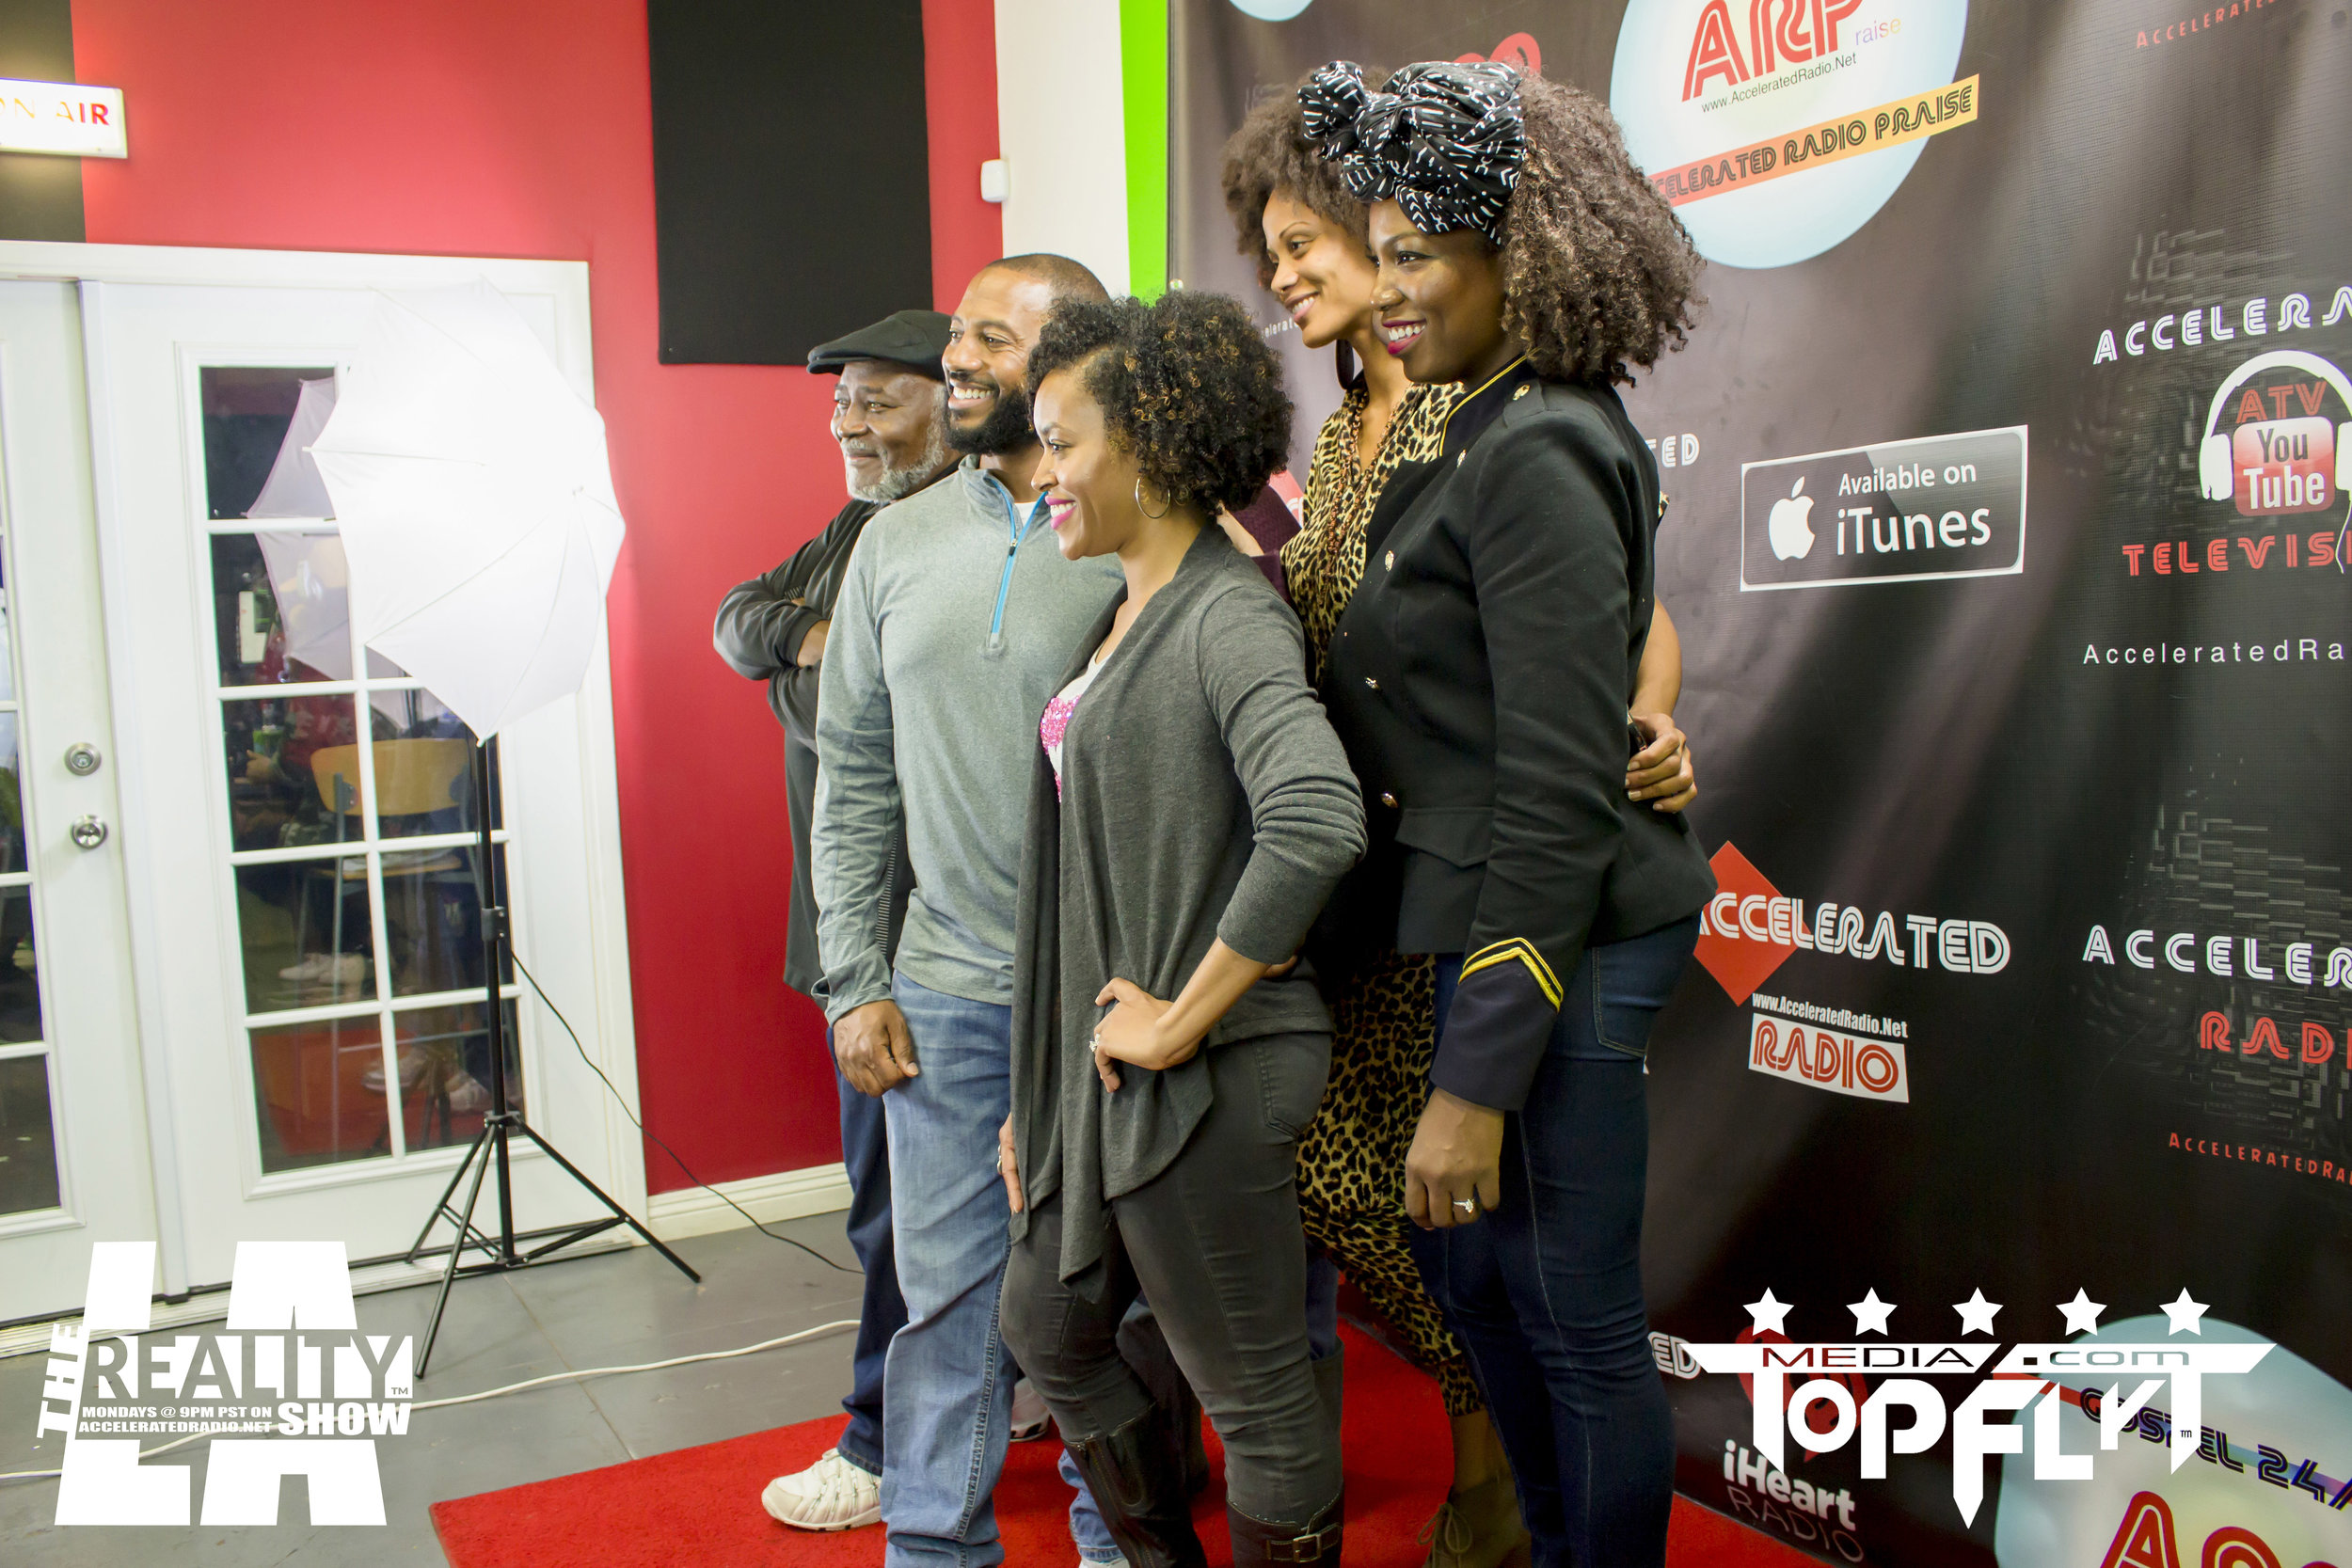 The Reality Show LA ft. Cast of FunnyMarriedStuff And Raquel Harris - 01-16-17_42.jpg